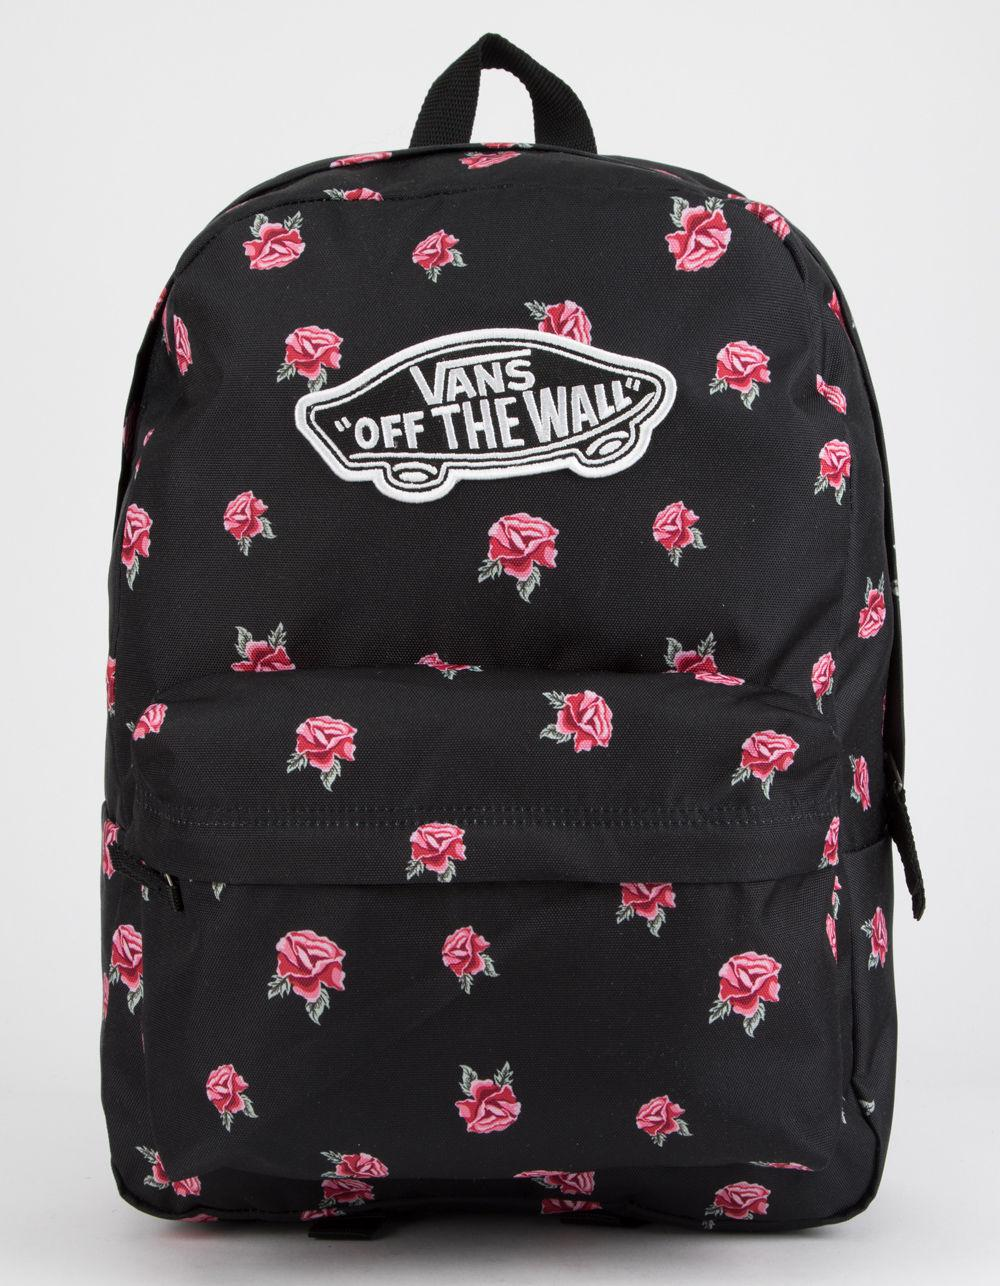 db1ef3da4e8 Vans Realm Black & Rose Backpack in Black - Lyst